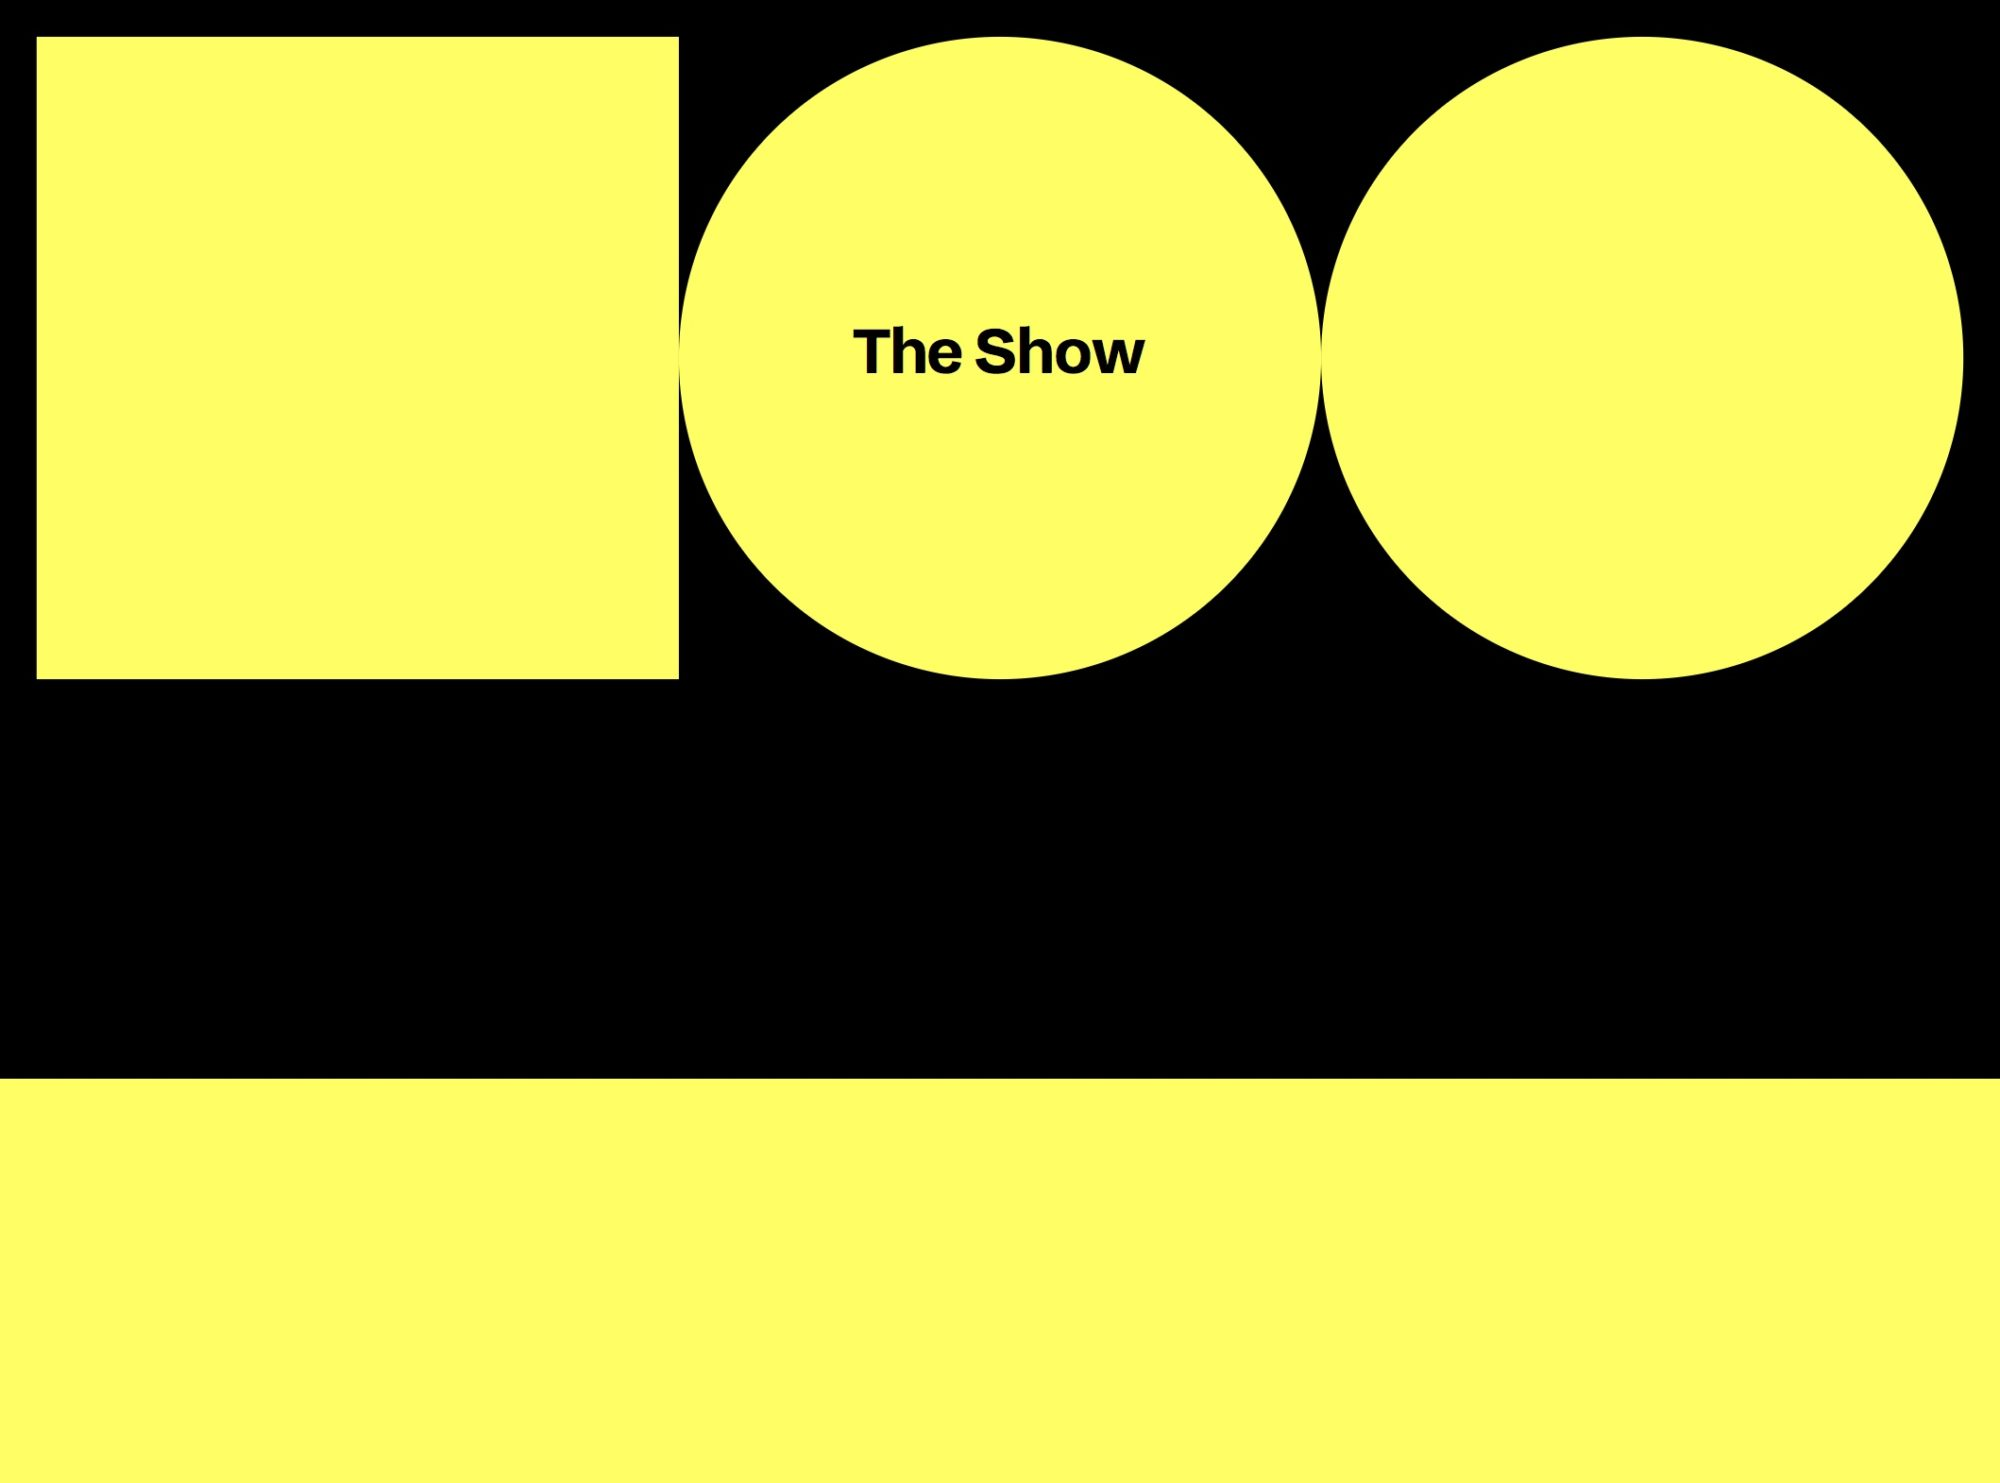 100 Show call for entries